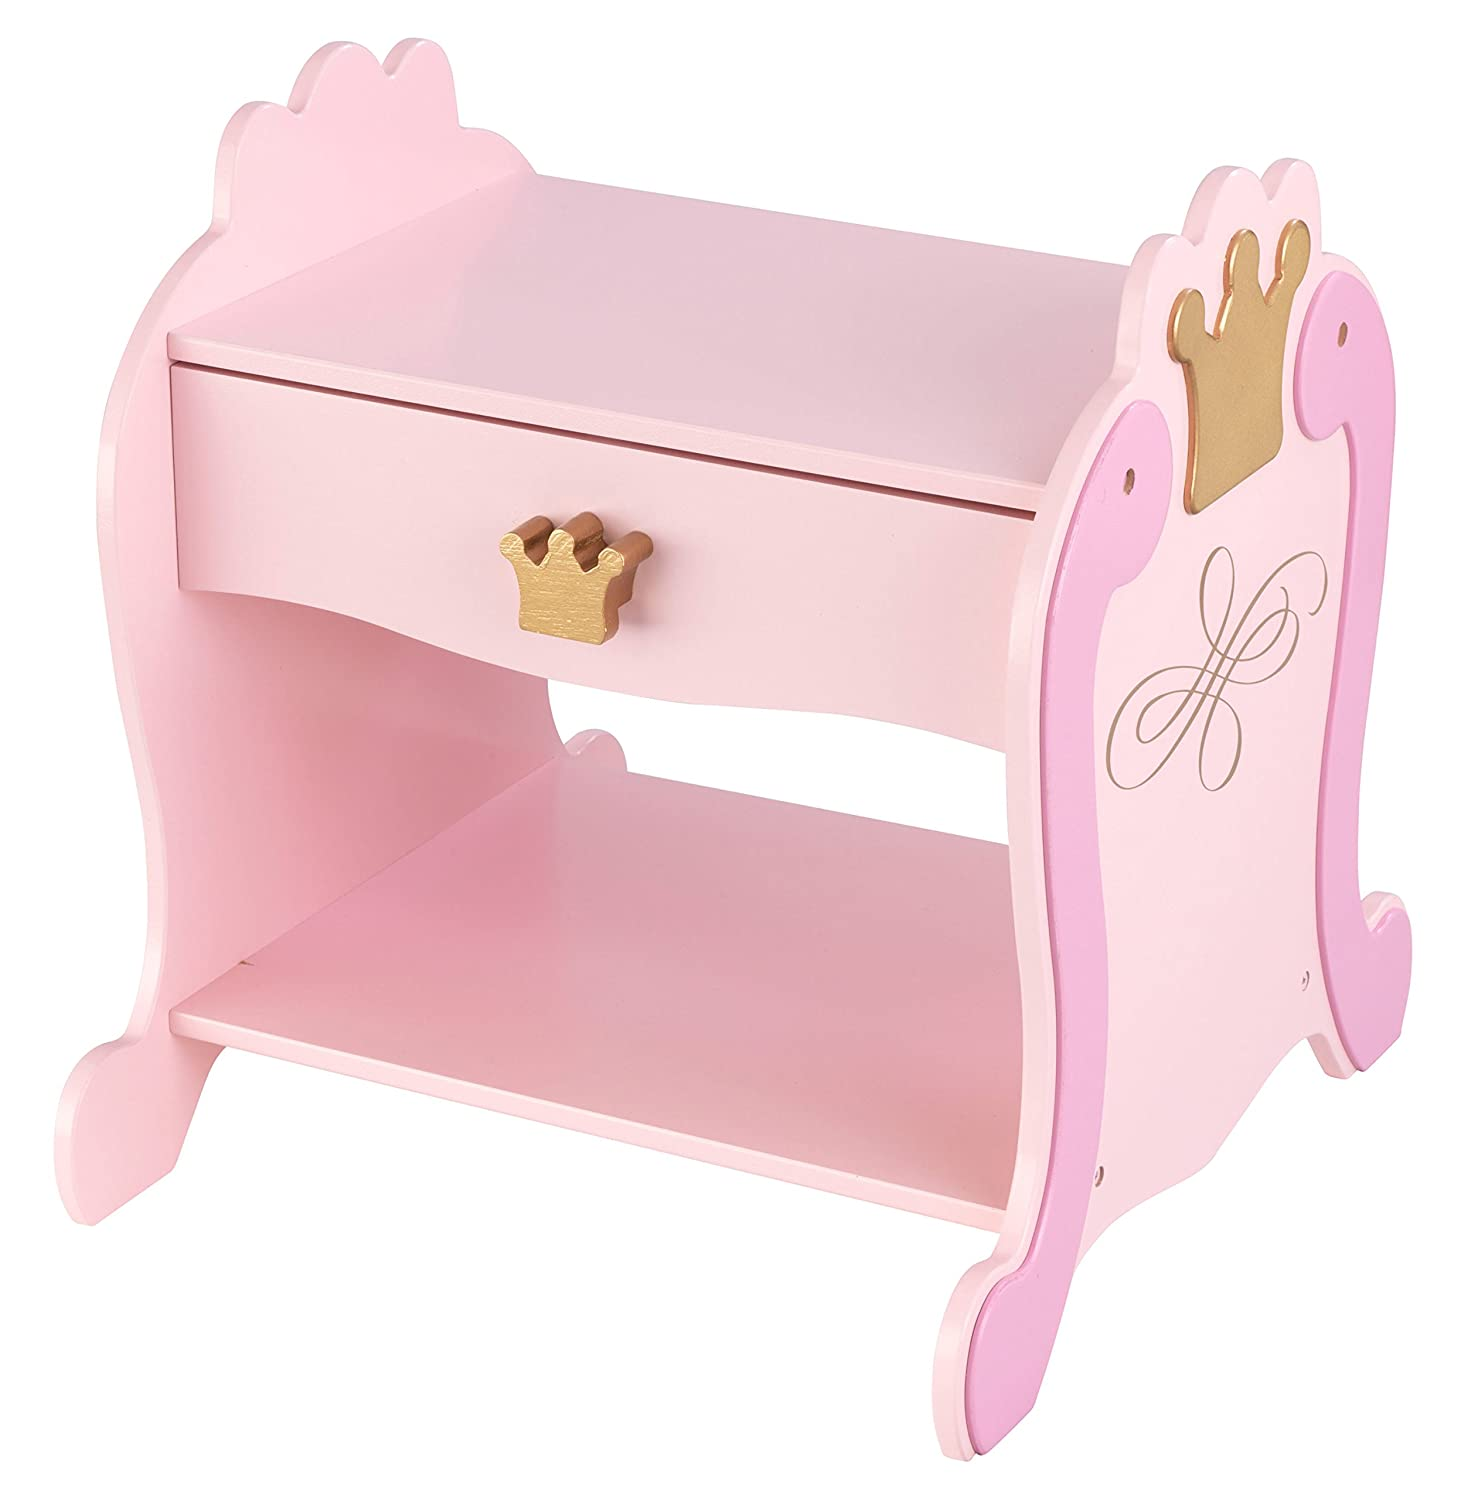 KidKraft 76124 KidKraft 76124 Princess Wooden Side Table Nightstand with Drawer for Kids, Toddler, Children's bedroom furniture and Princess bed